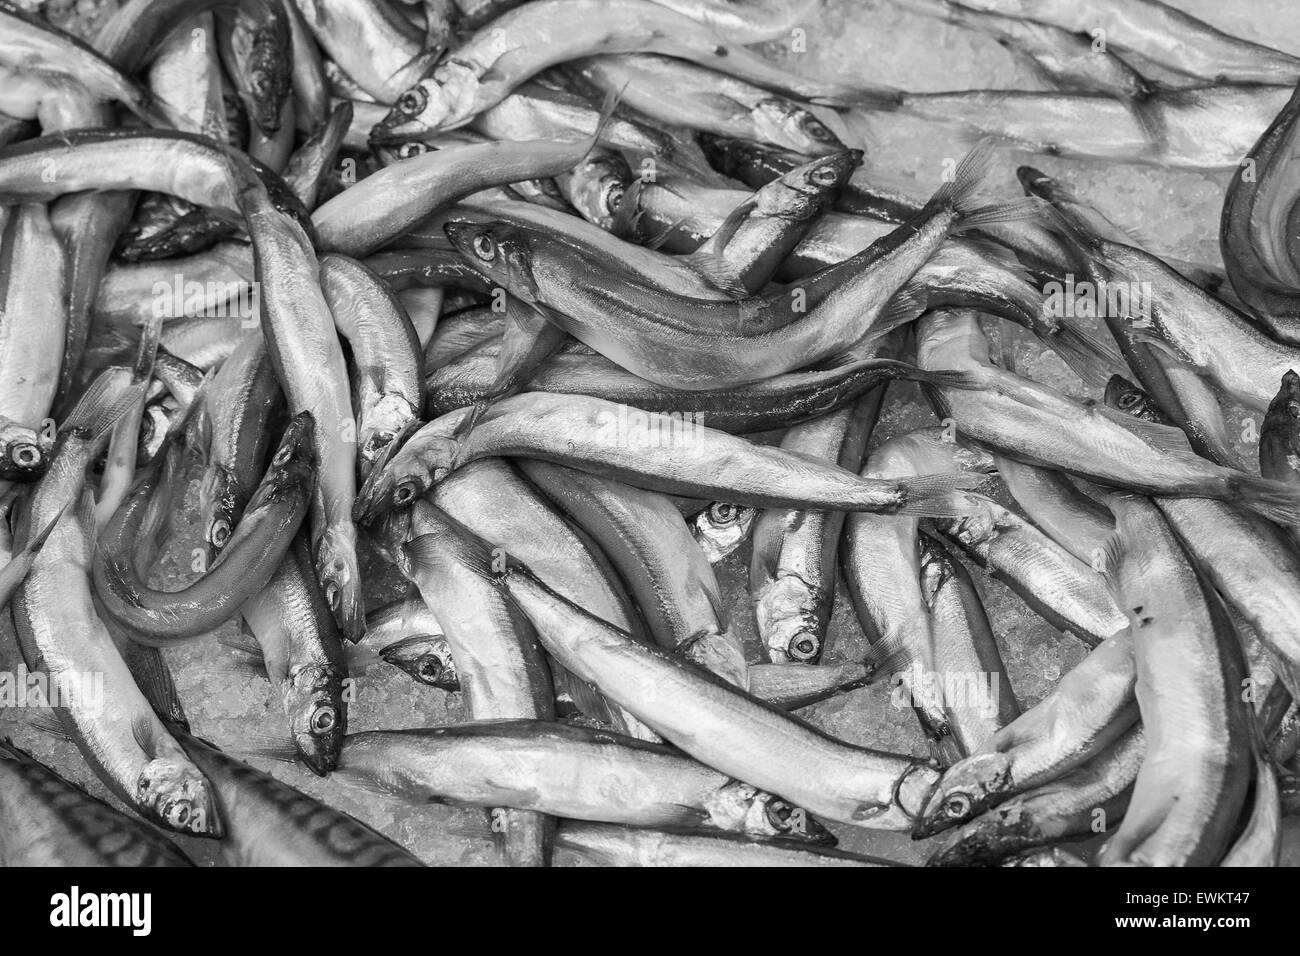 Closeup of small raw whitebait fish. - Stock Image